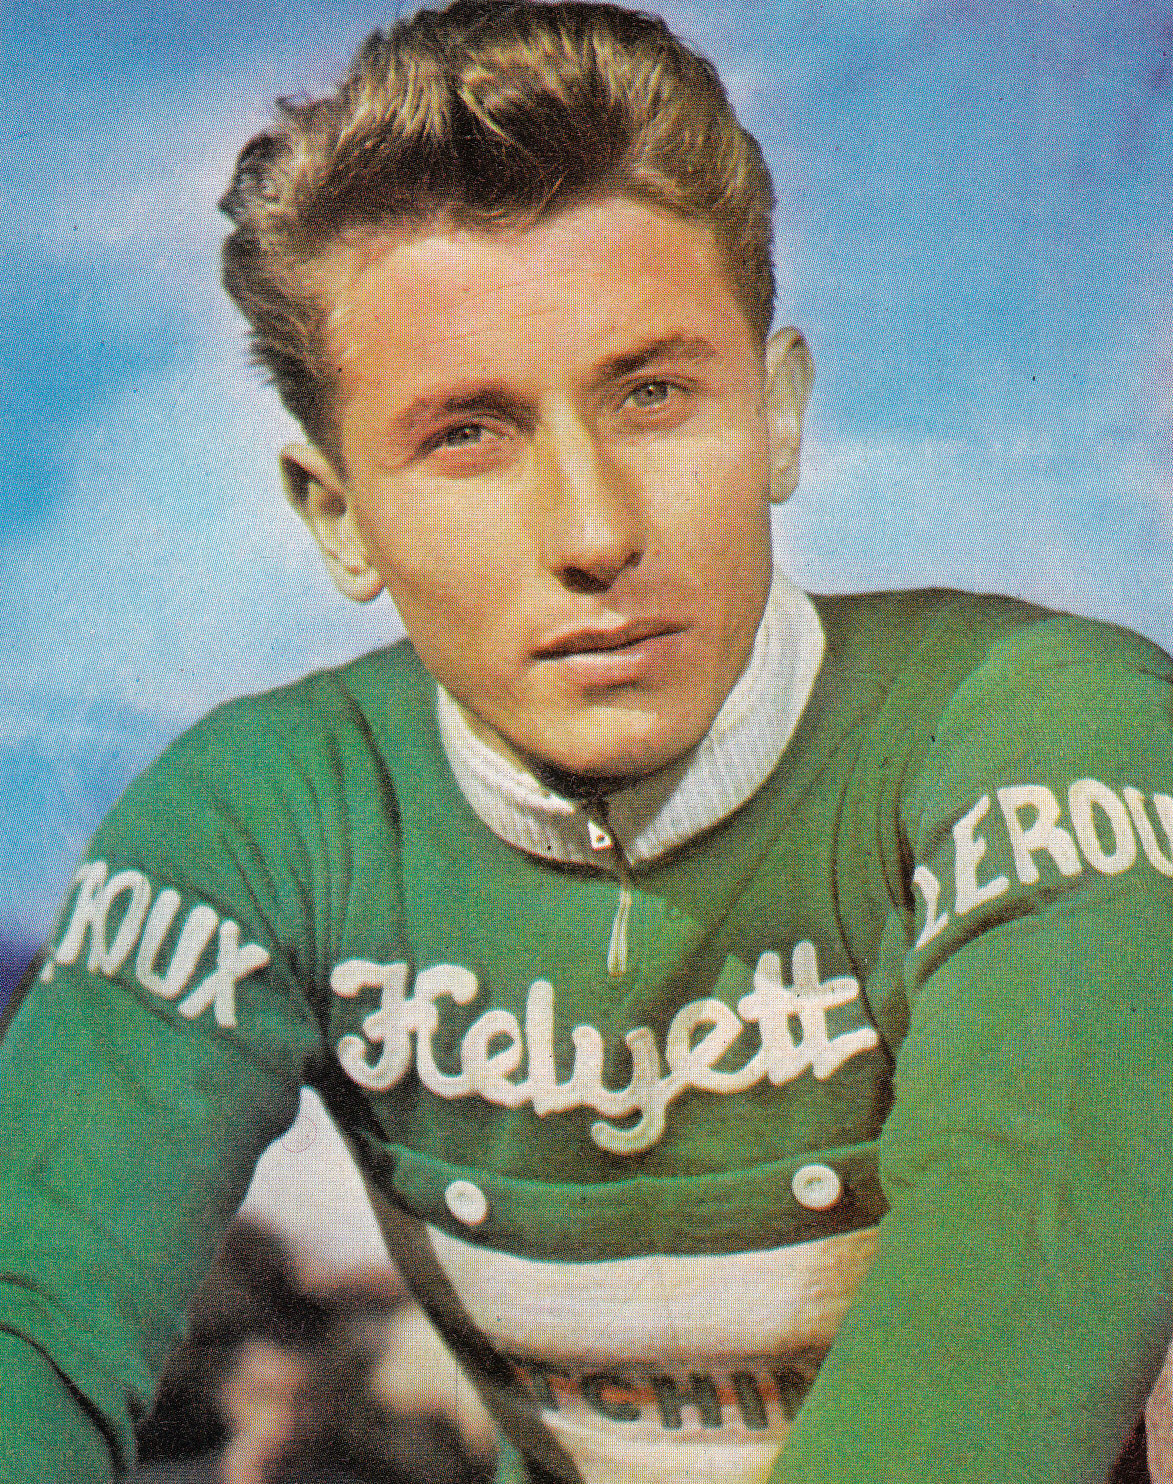 Bicihome Anquetil